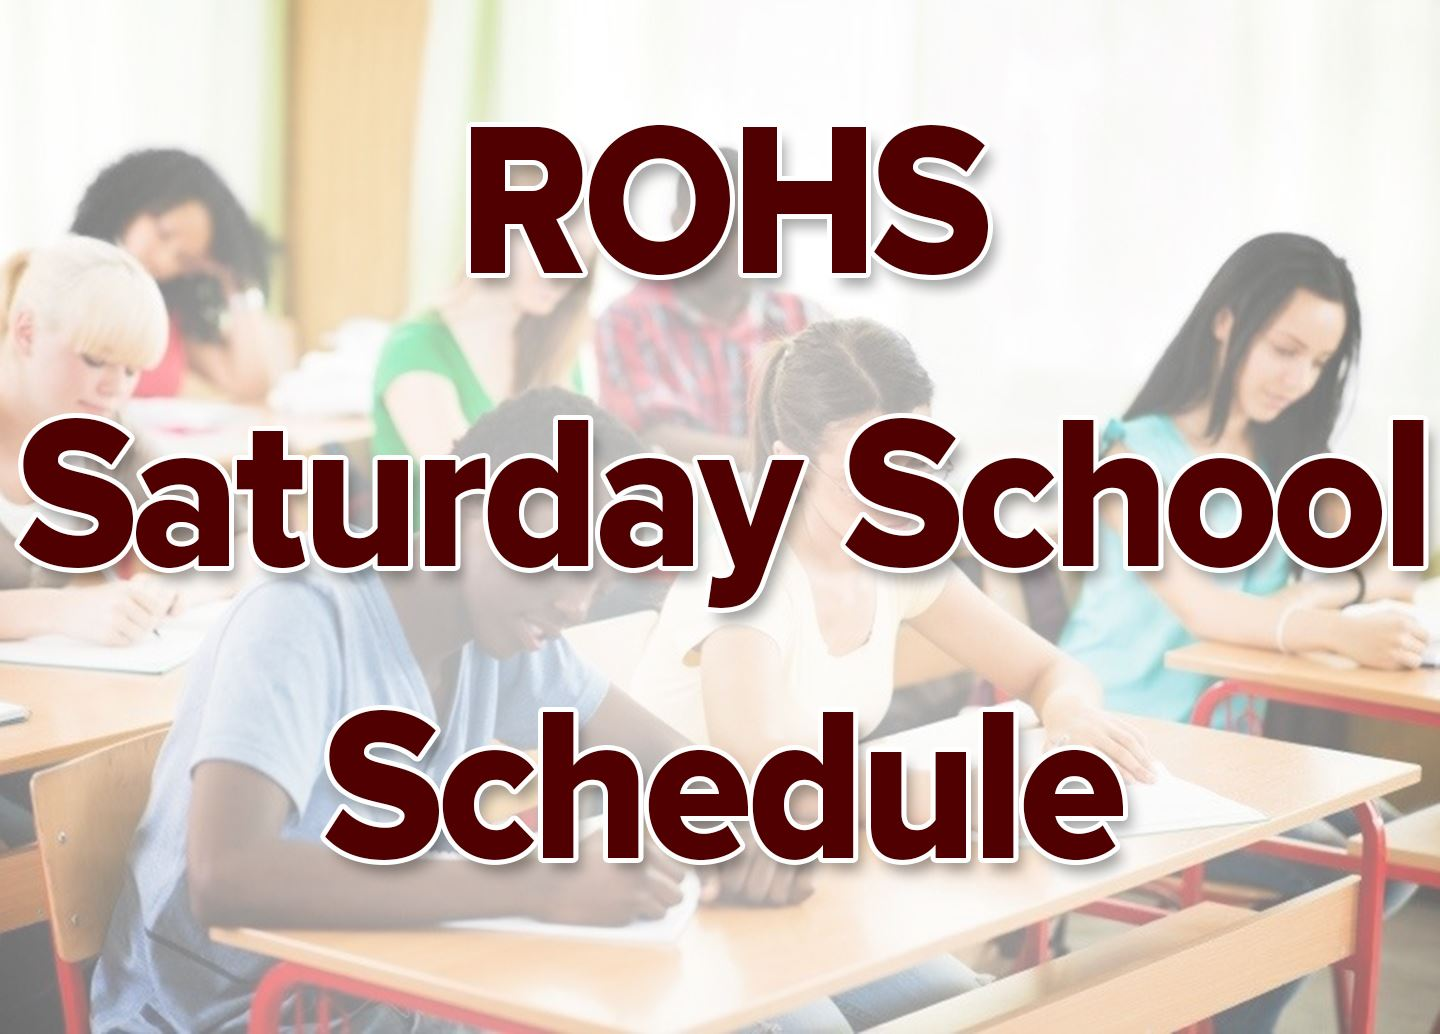 ROHS Saturday School Schedule